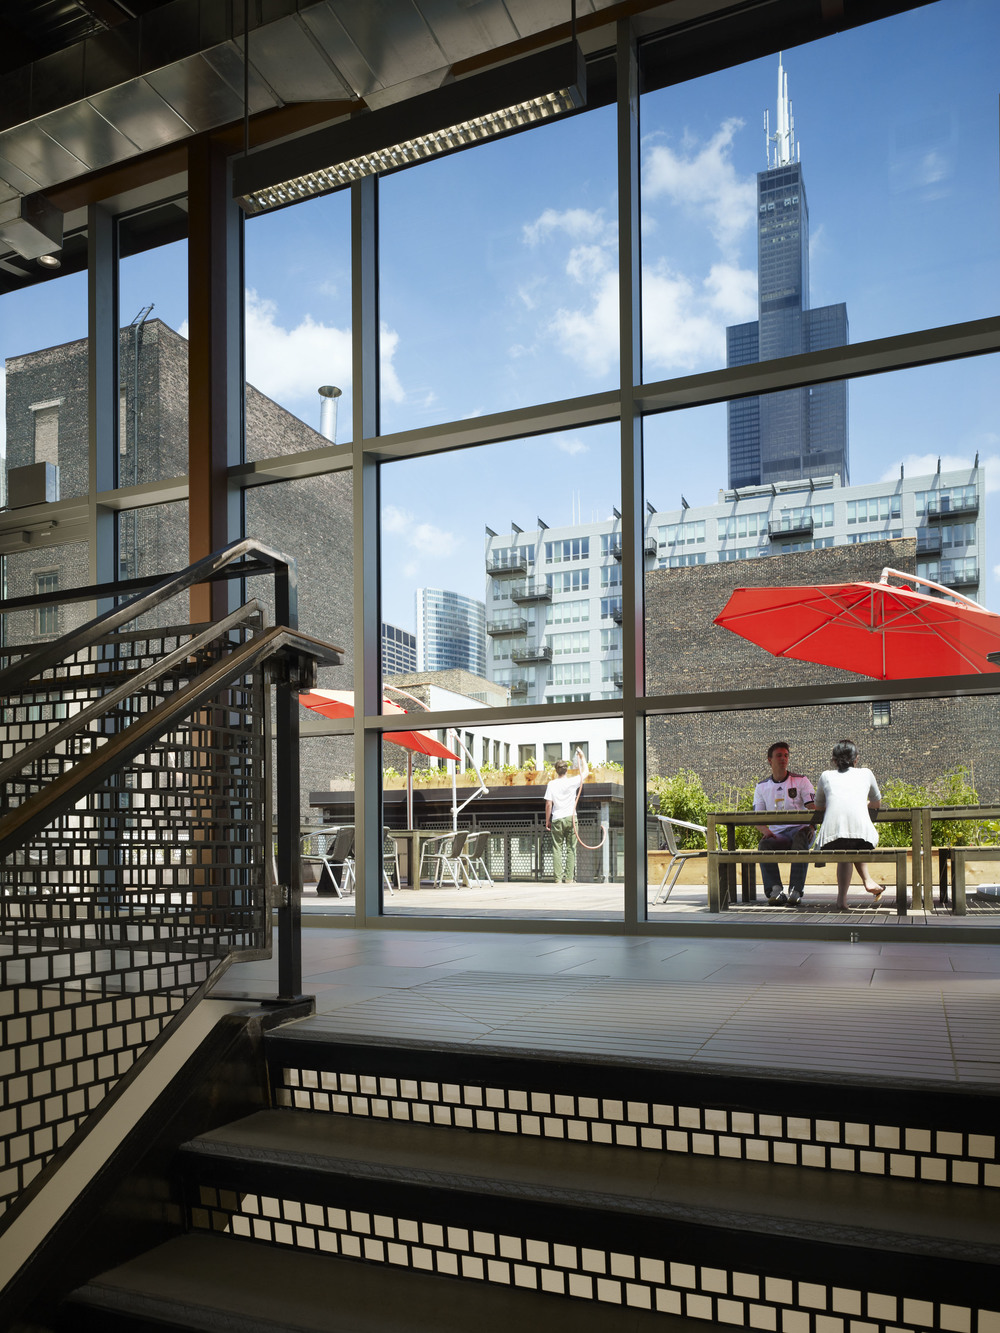 This is one of my favorite spaces in the IDEO office: our roofdeck! It's a great sanity check to have some outdoor space in the middle of a busy work week. Bonus: during the summer we hold outdoor movie nights out there. Photo by Steve Hall (C) 2010 Hedrich Blessing Photography